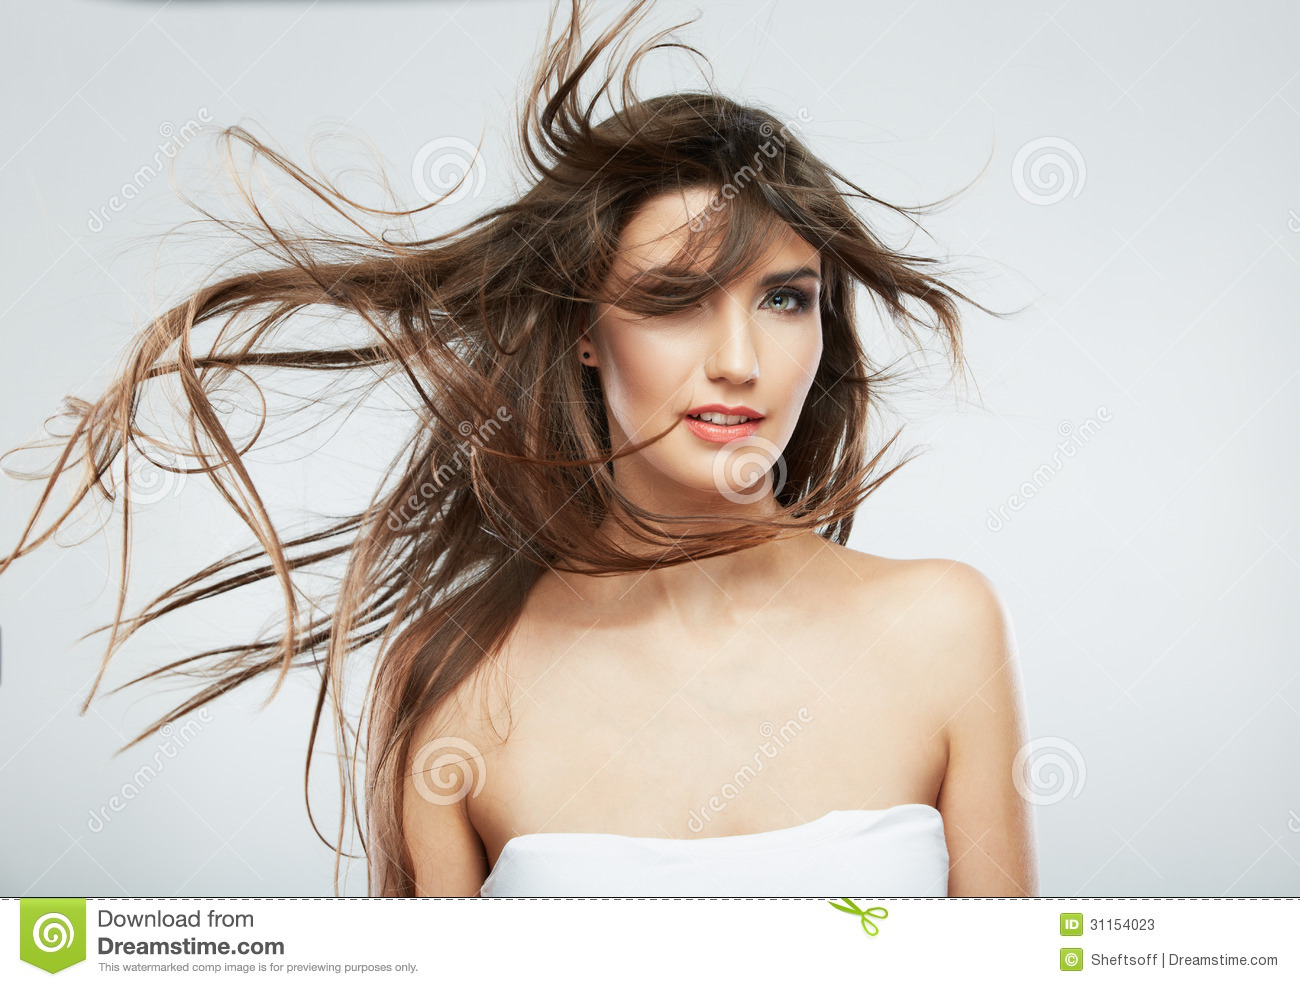 woman-face-hair-motion-white-background-isolated-close-up-portrait-female-model-long-31154023.jpg